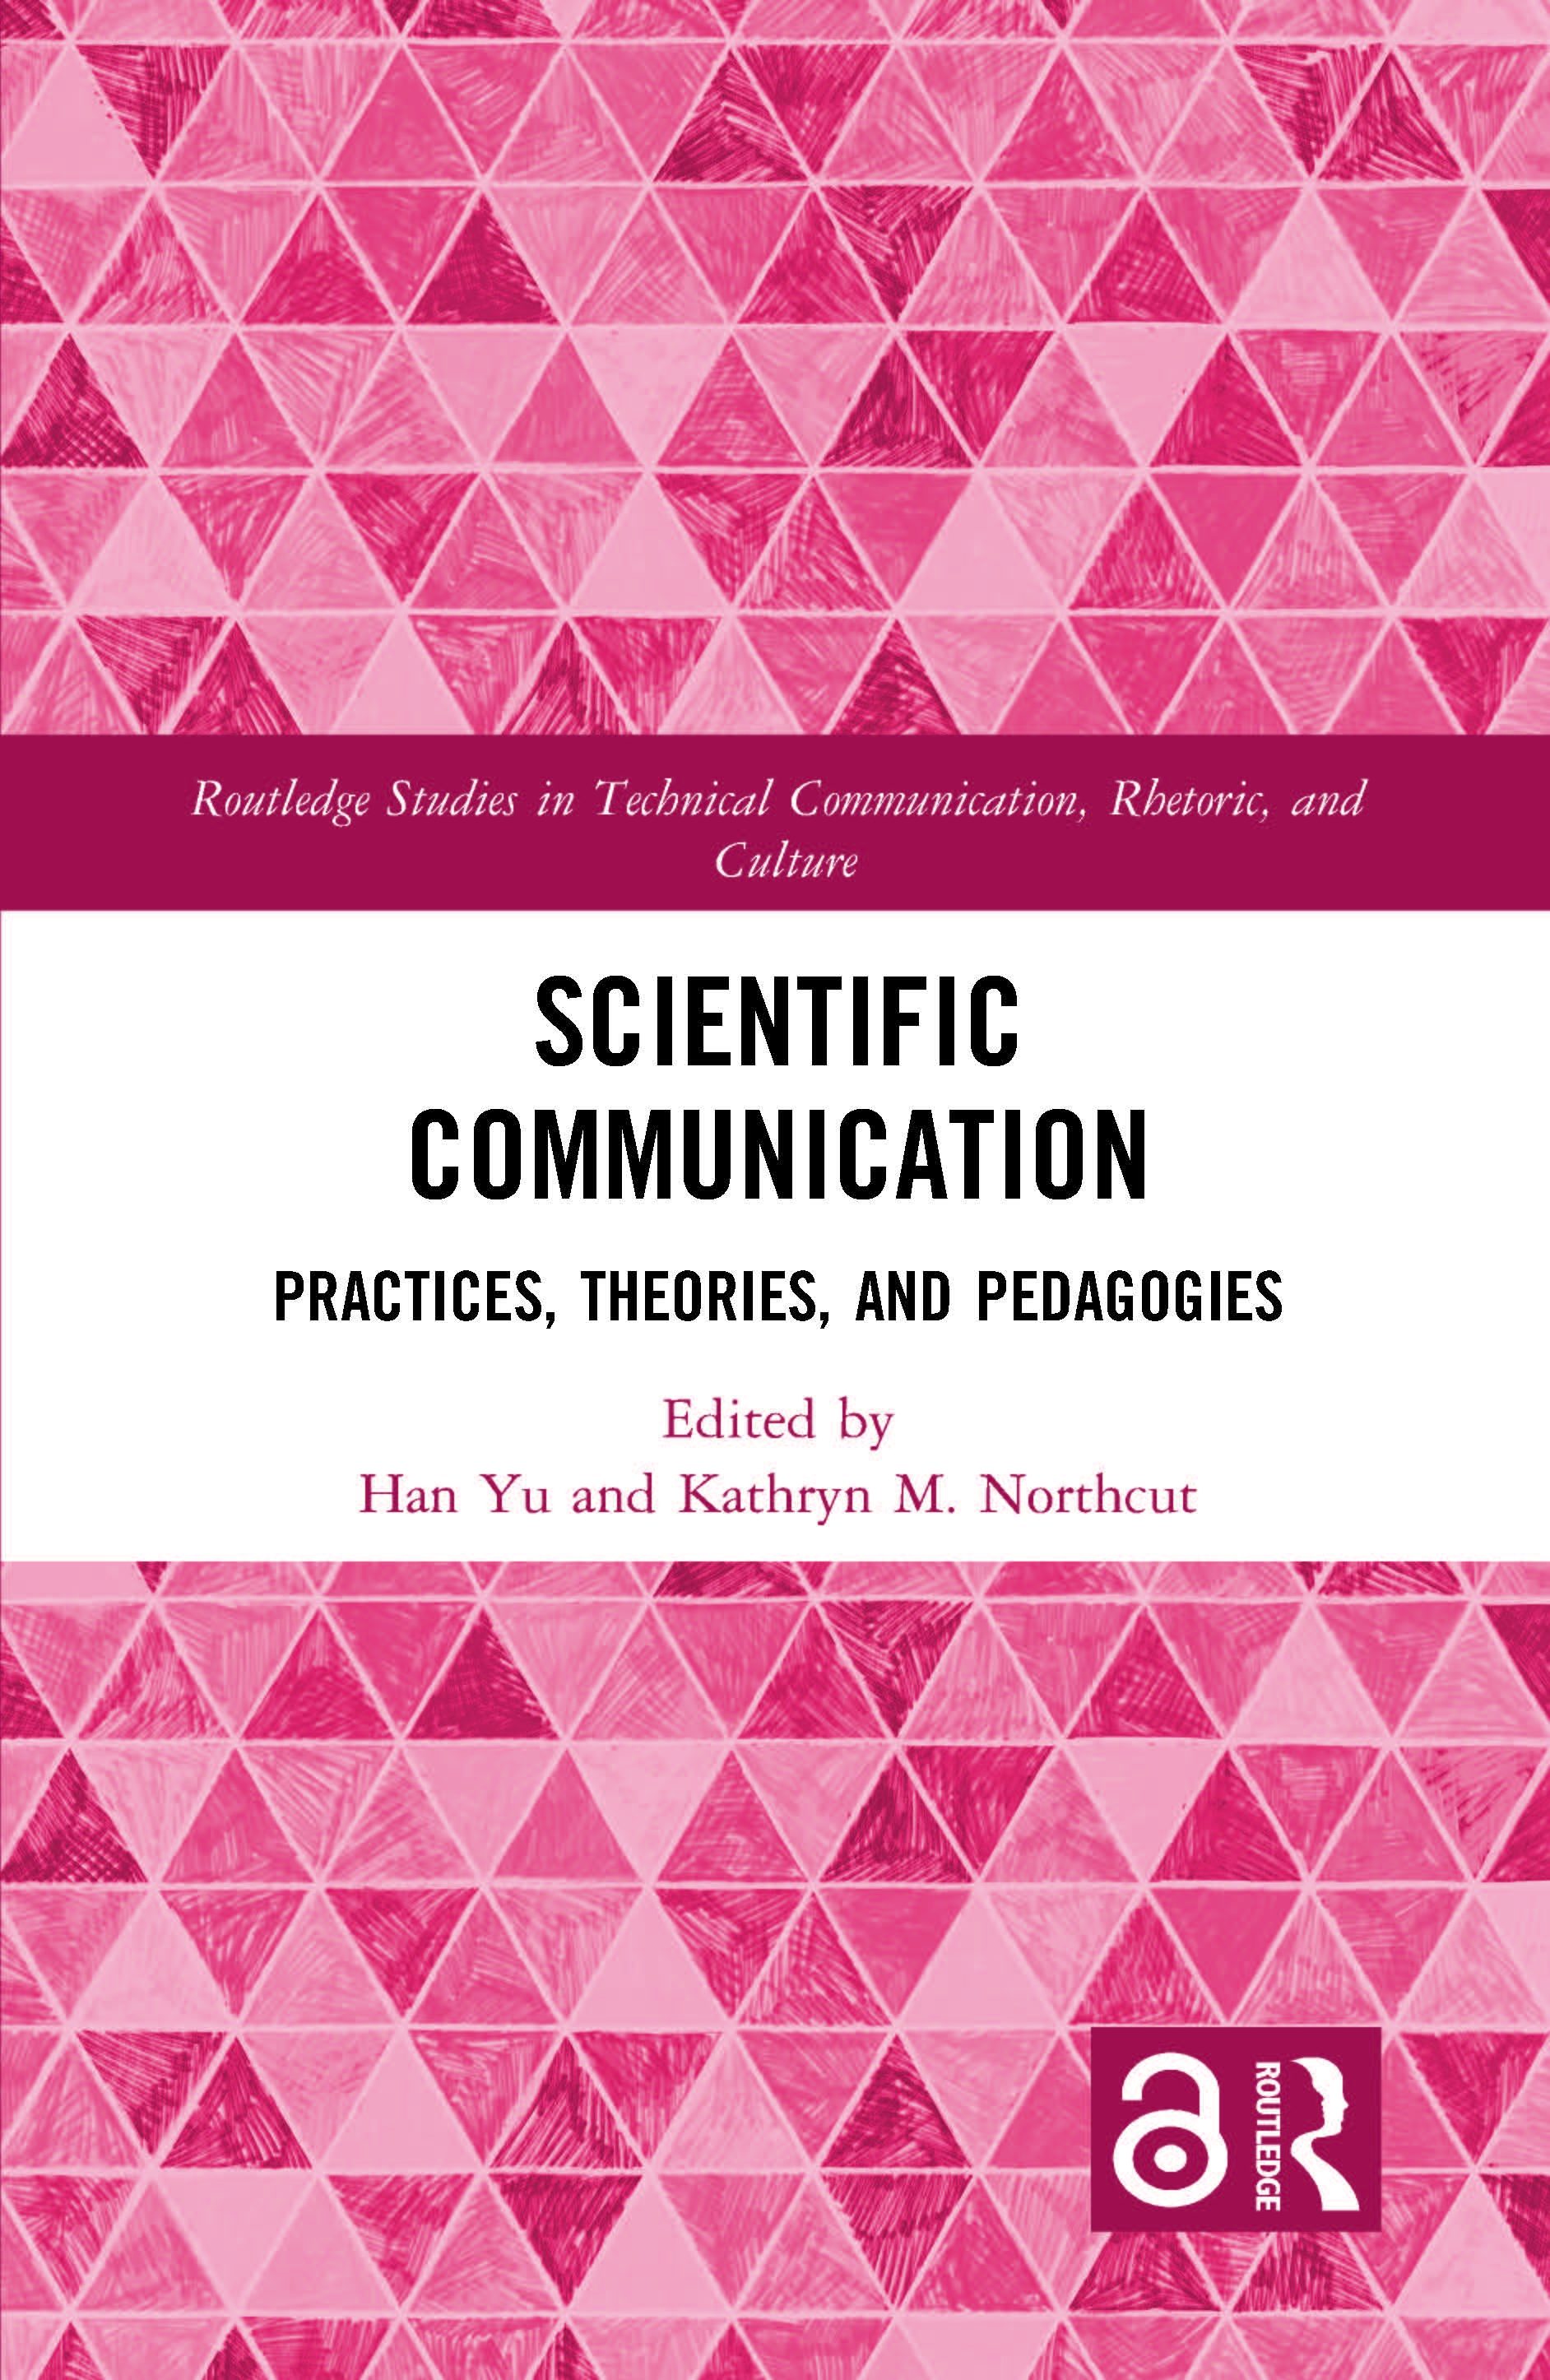 Scientific Communication: Practices, Theories, and Pedagogies book cover